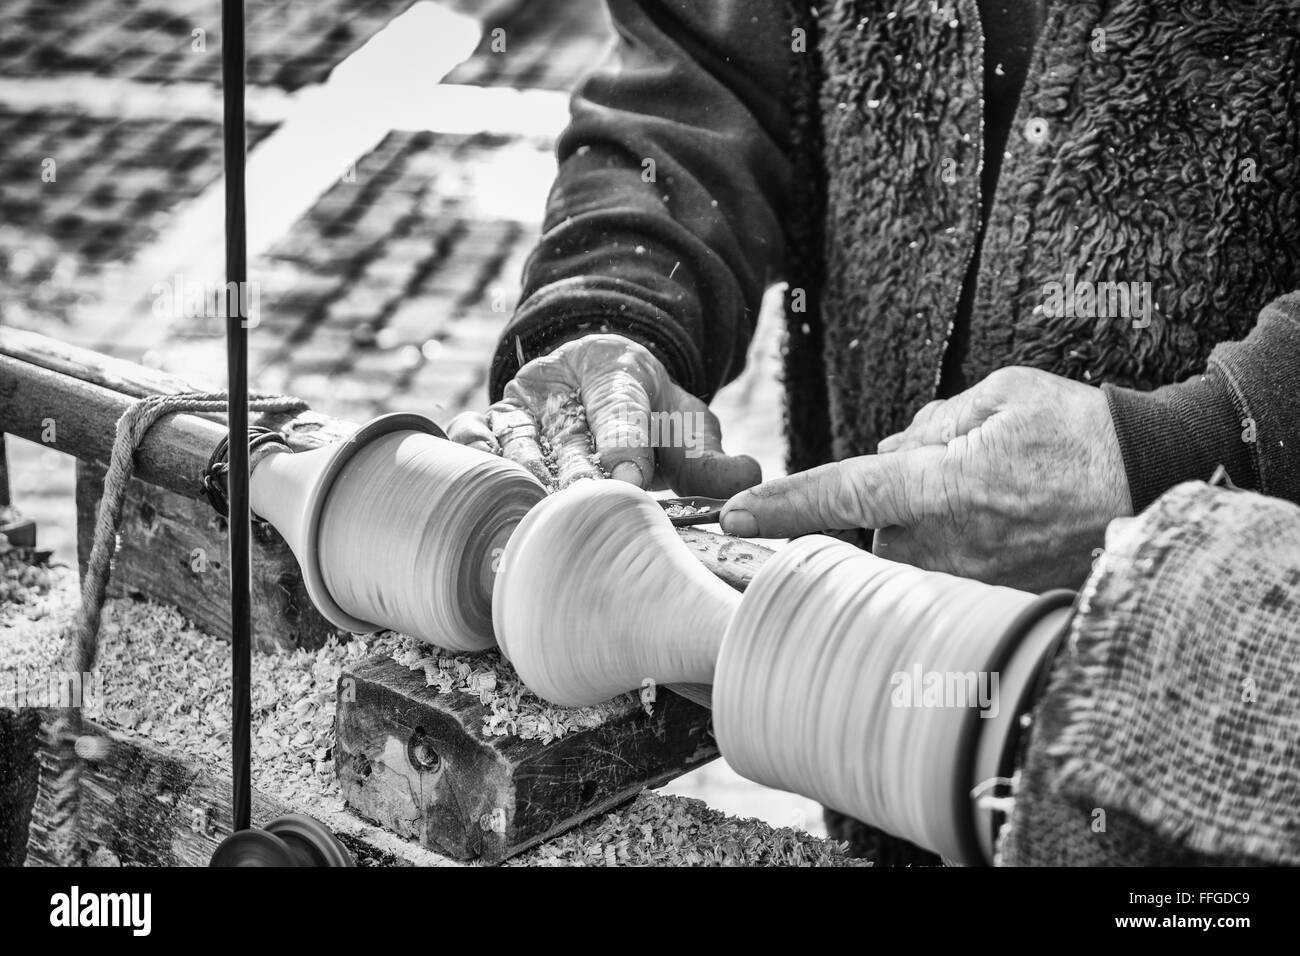 An artisan carves a piece of wood using an old manual lathe. - Stock Image